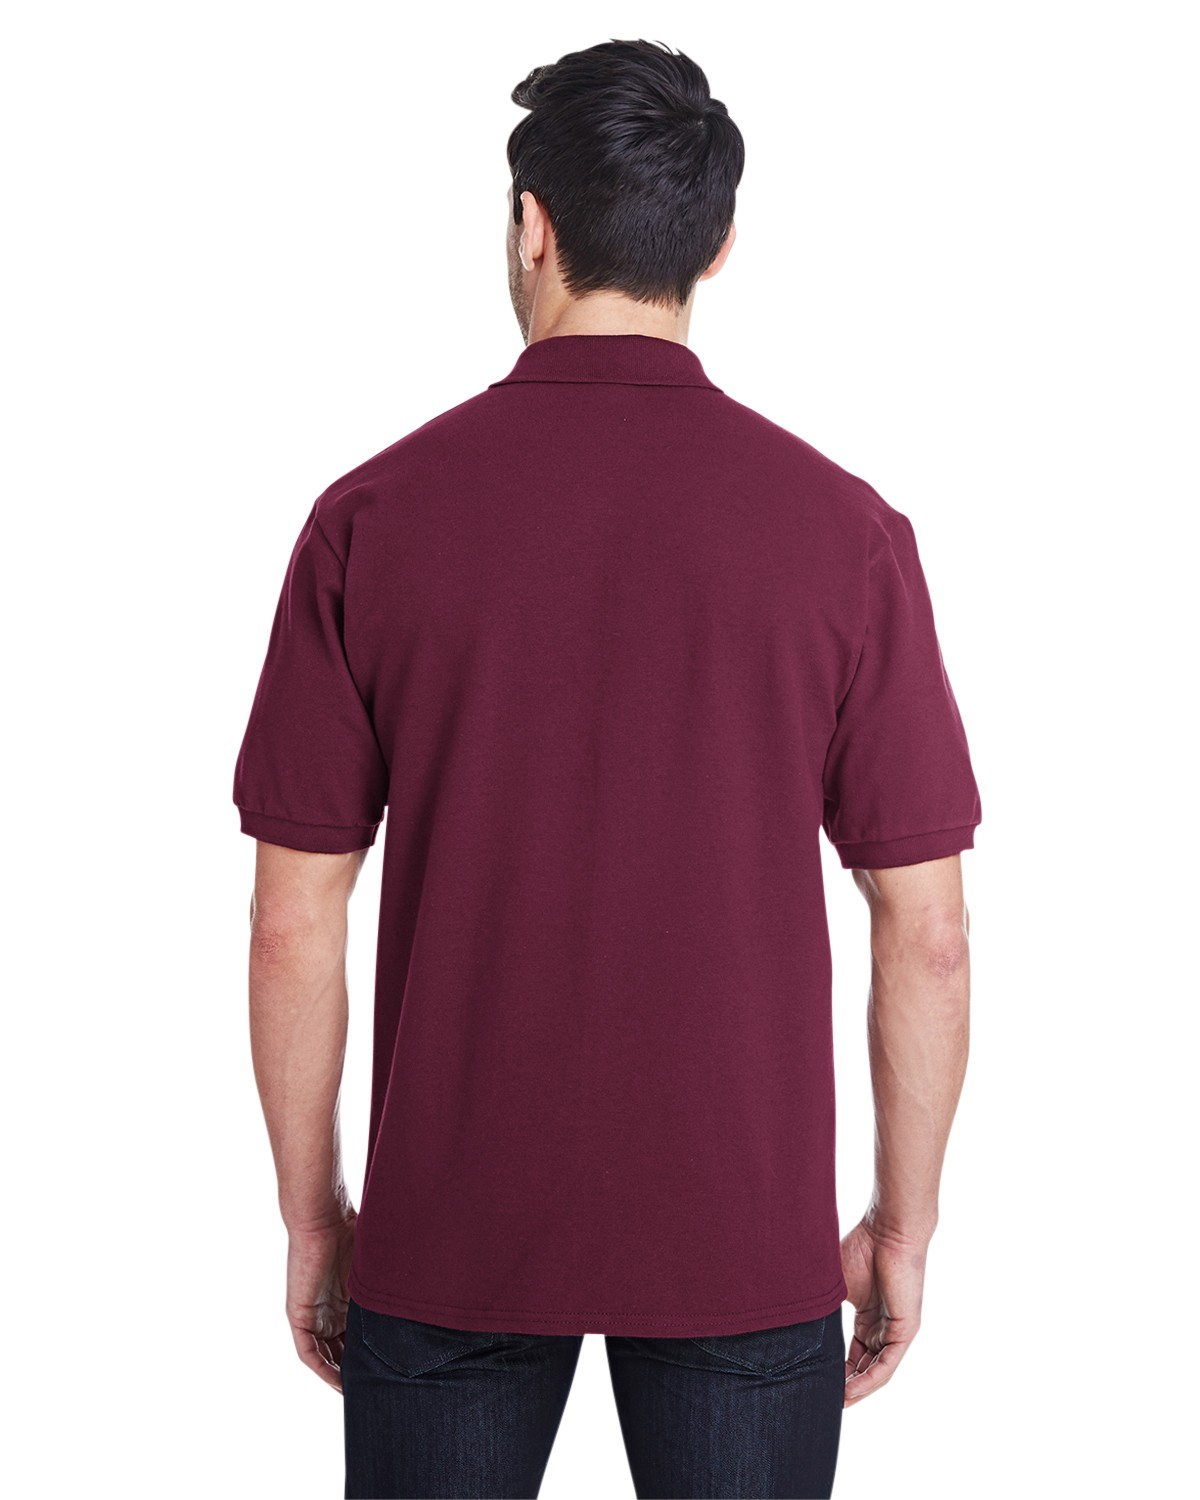 443MR Jerzees MAROON